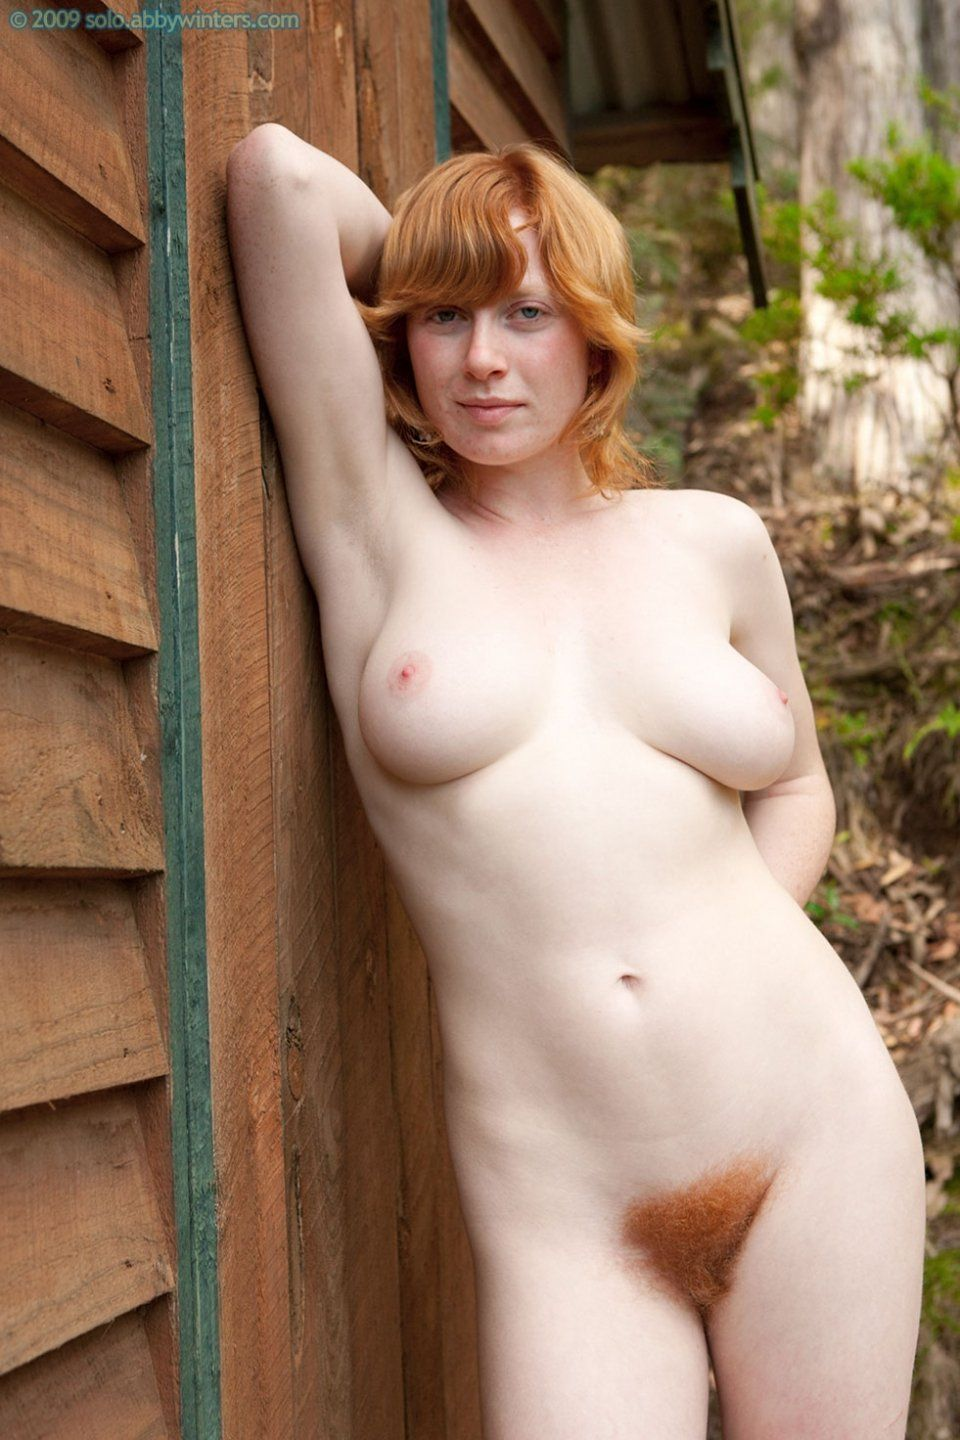 Opinion, actual, sexy naked redhead girls with pubic hair cum really